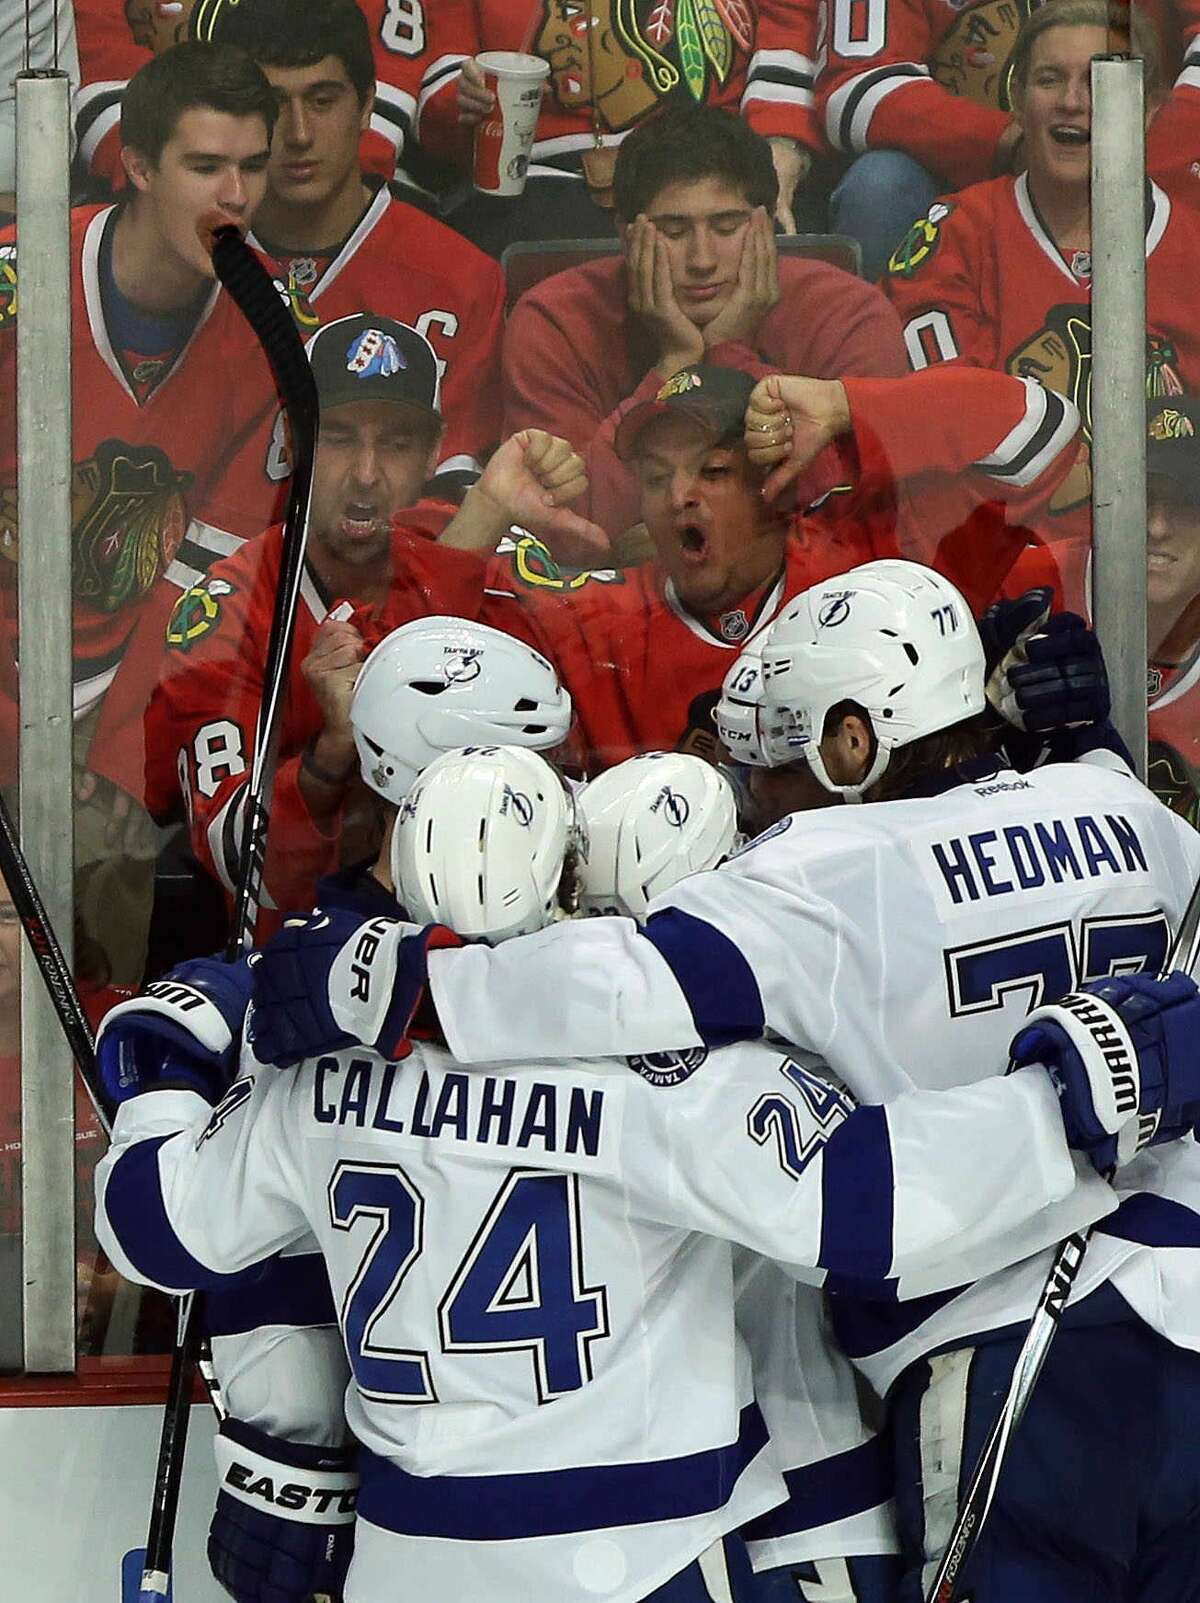 Fans react after the Tampa Bay Lightning scored the winning goal in Game 3 of the Stanley Cup Final against the Blackhawks on Monday in Chicago.